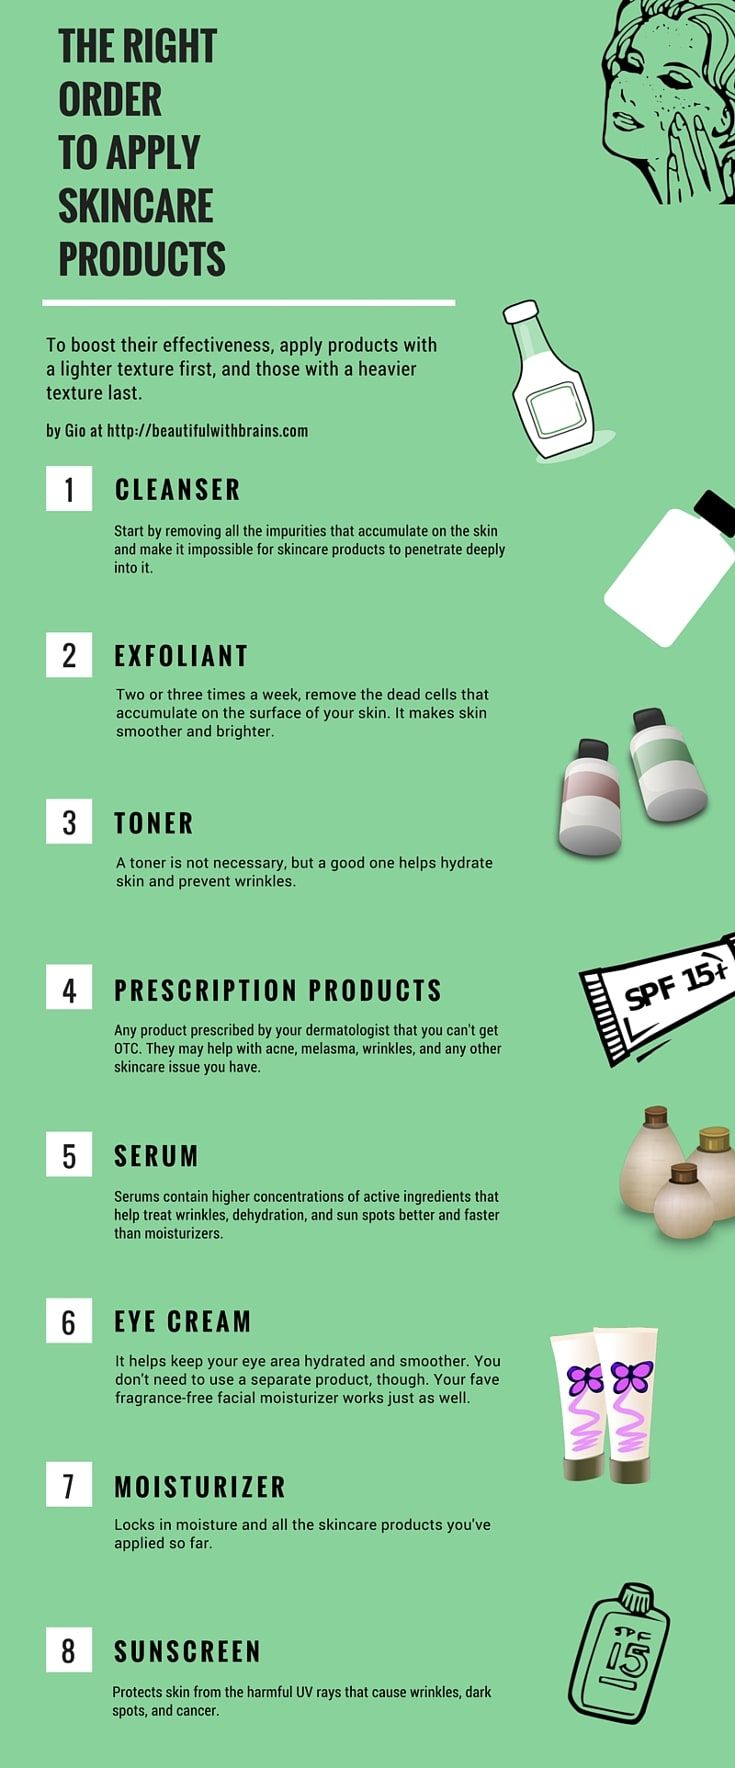 Right Skin Care Routine Order: How To Layer Your Products Like A ProKim F